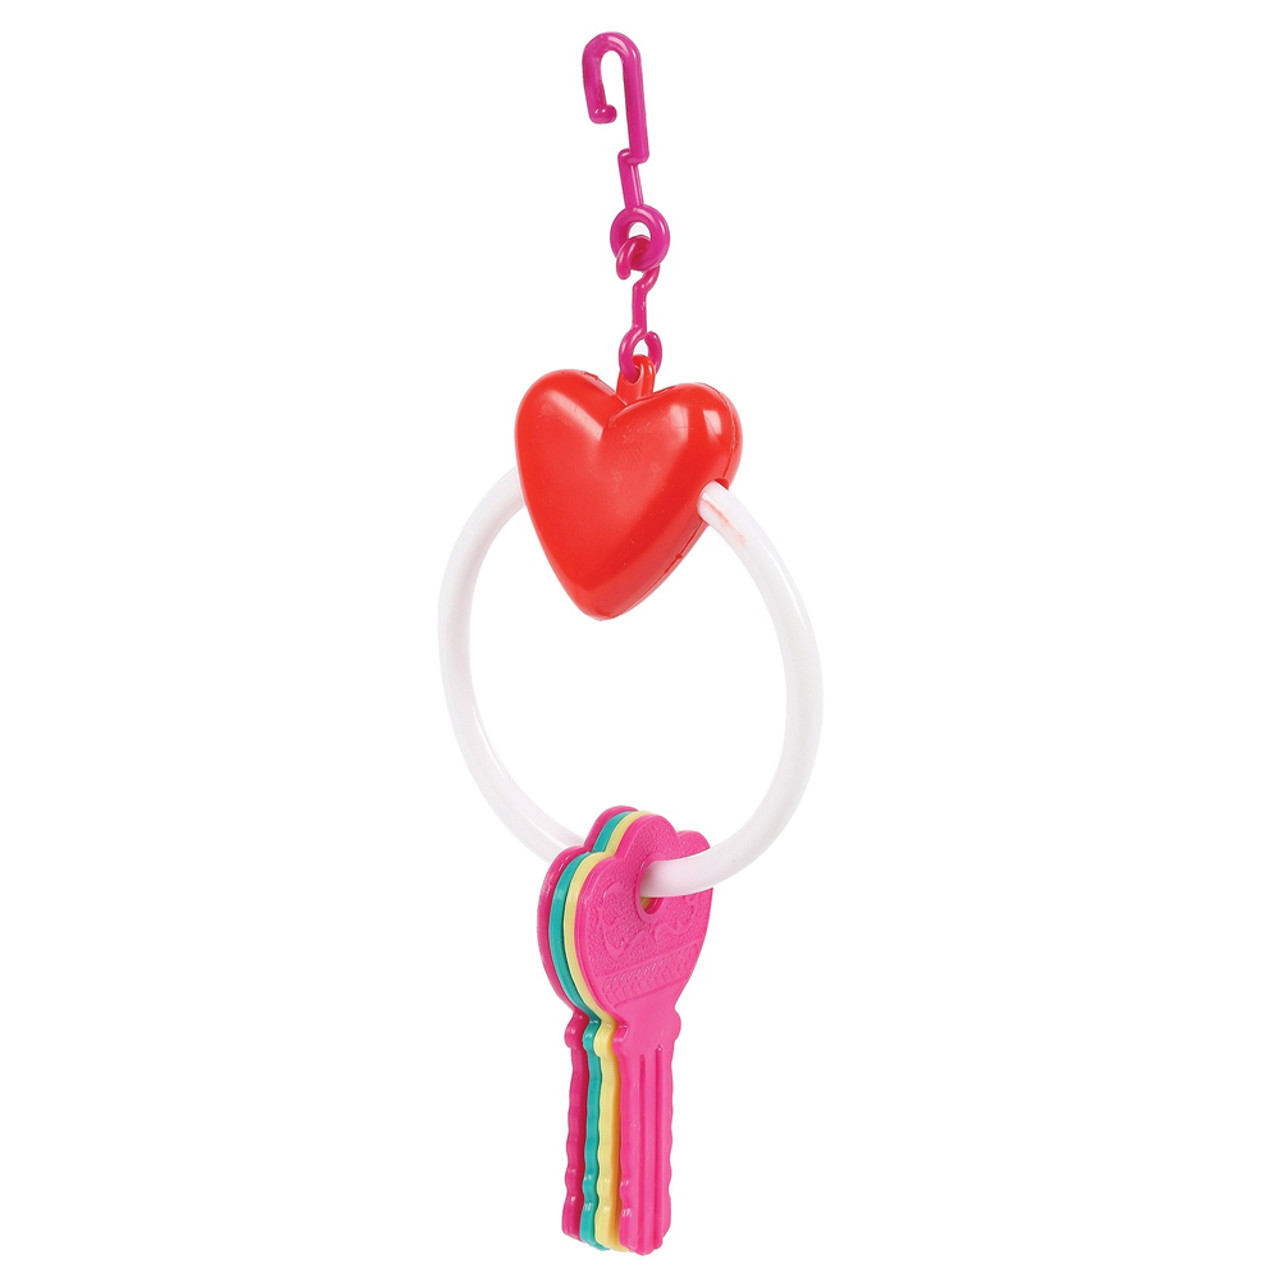 Small Toy Parrots : Buy key ring toy for small parrots